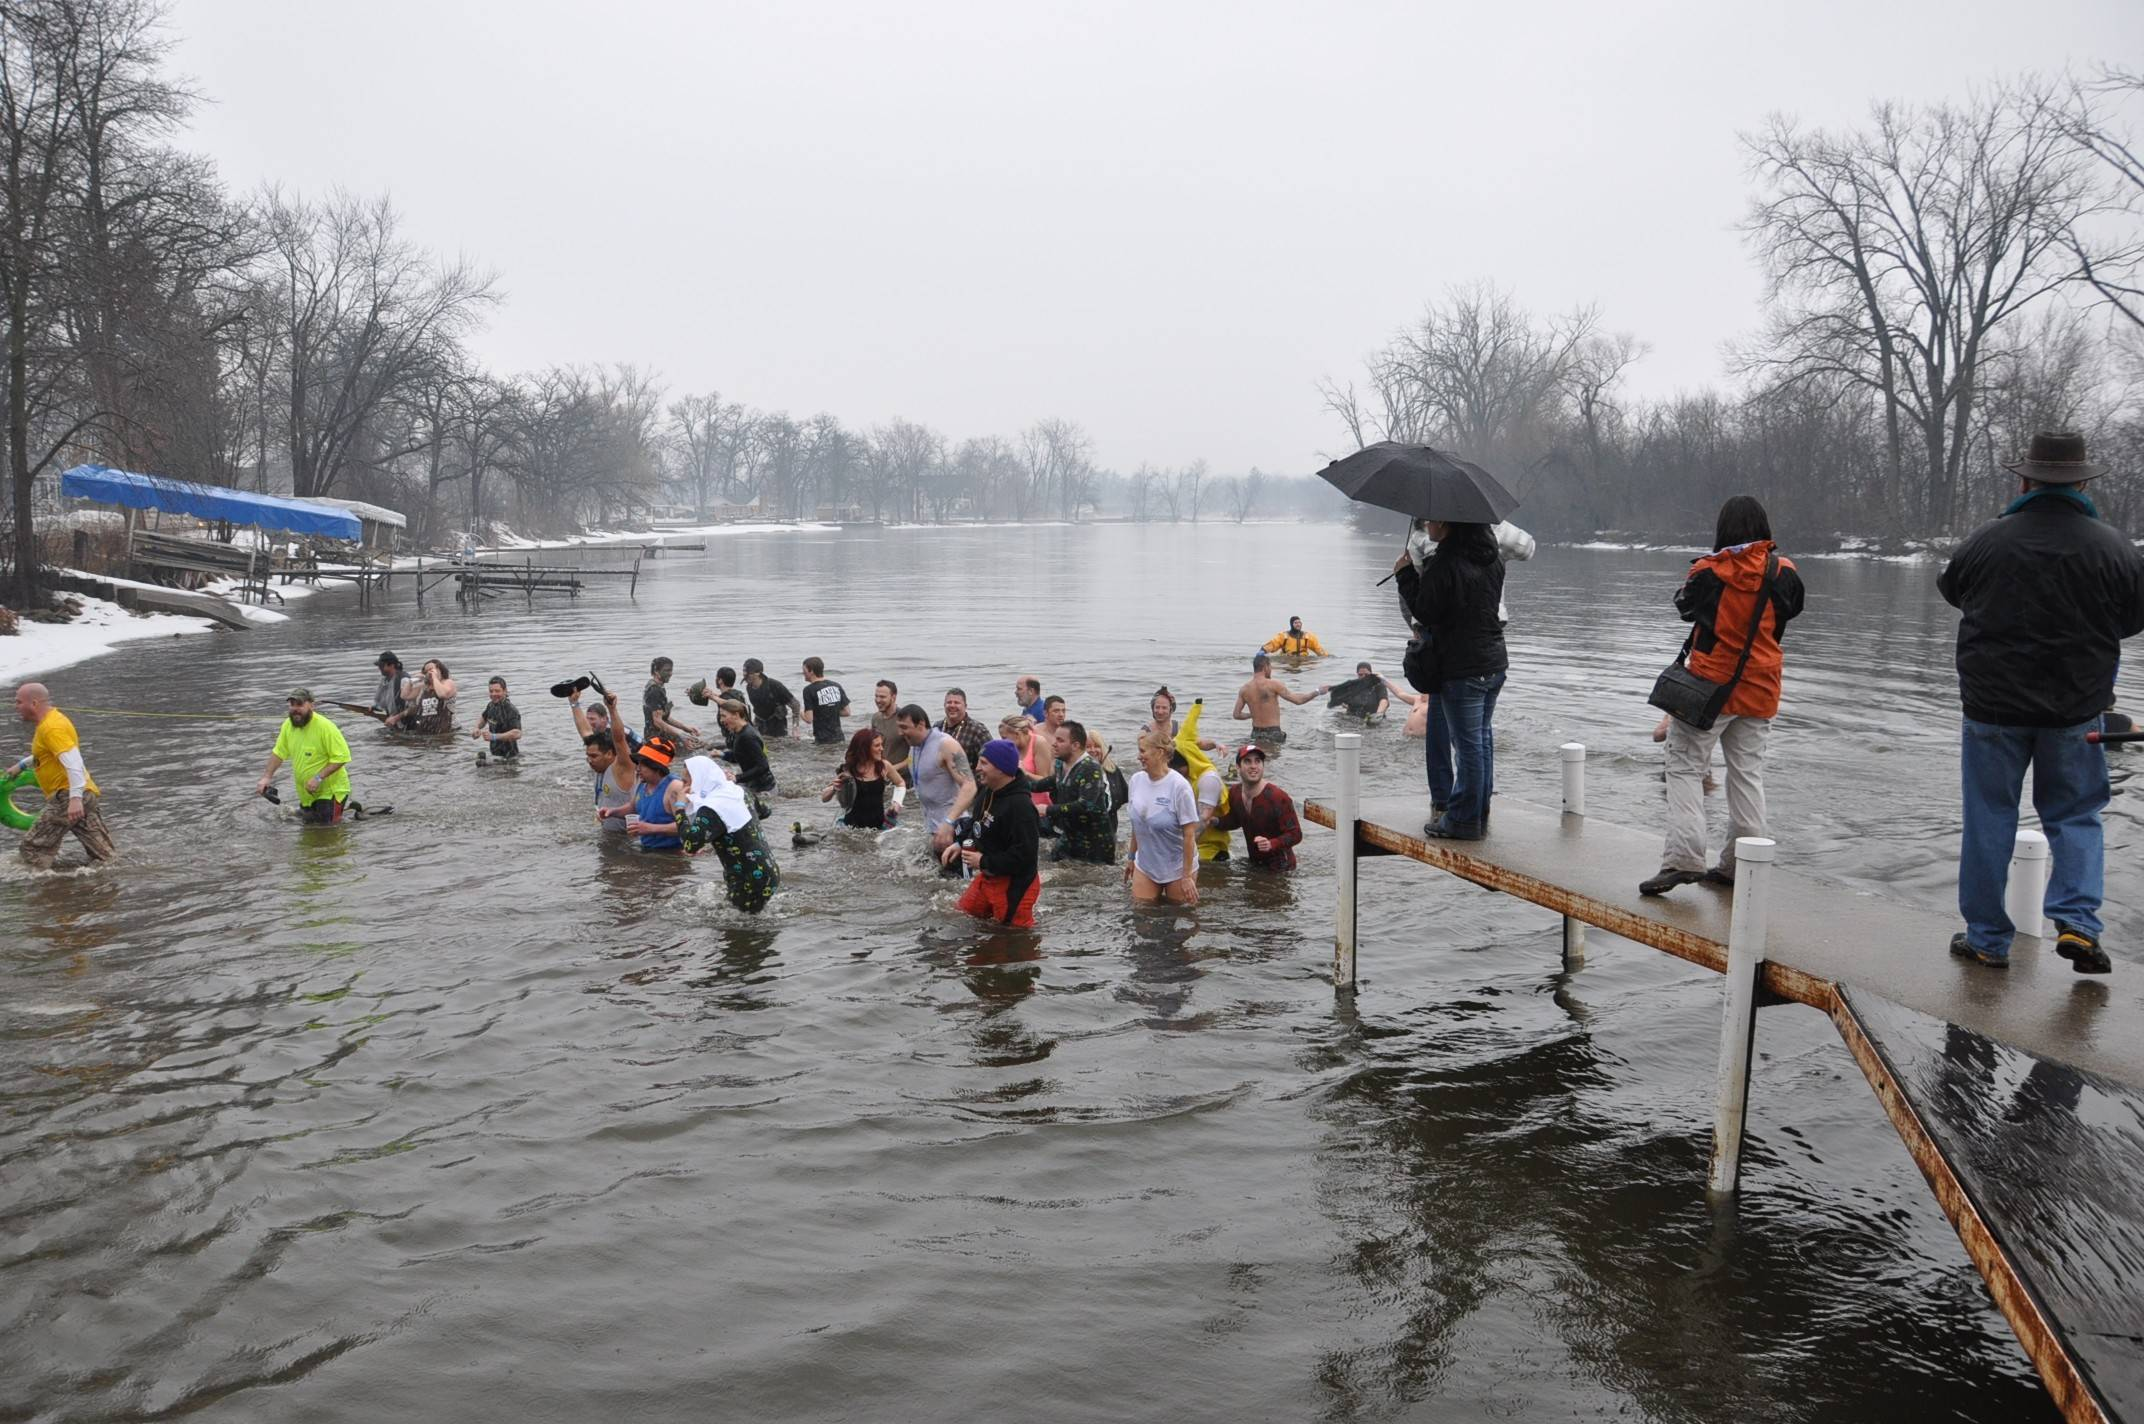 Participants of last year's Fox River Shiver brave the icy waters of the Fox River to raise funds for Ann and Robert H. Lurie Children's Hospital of Chicago.